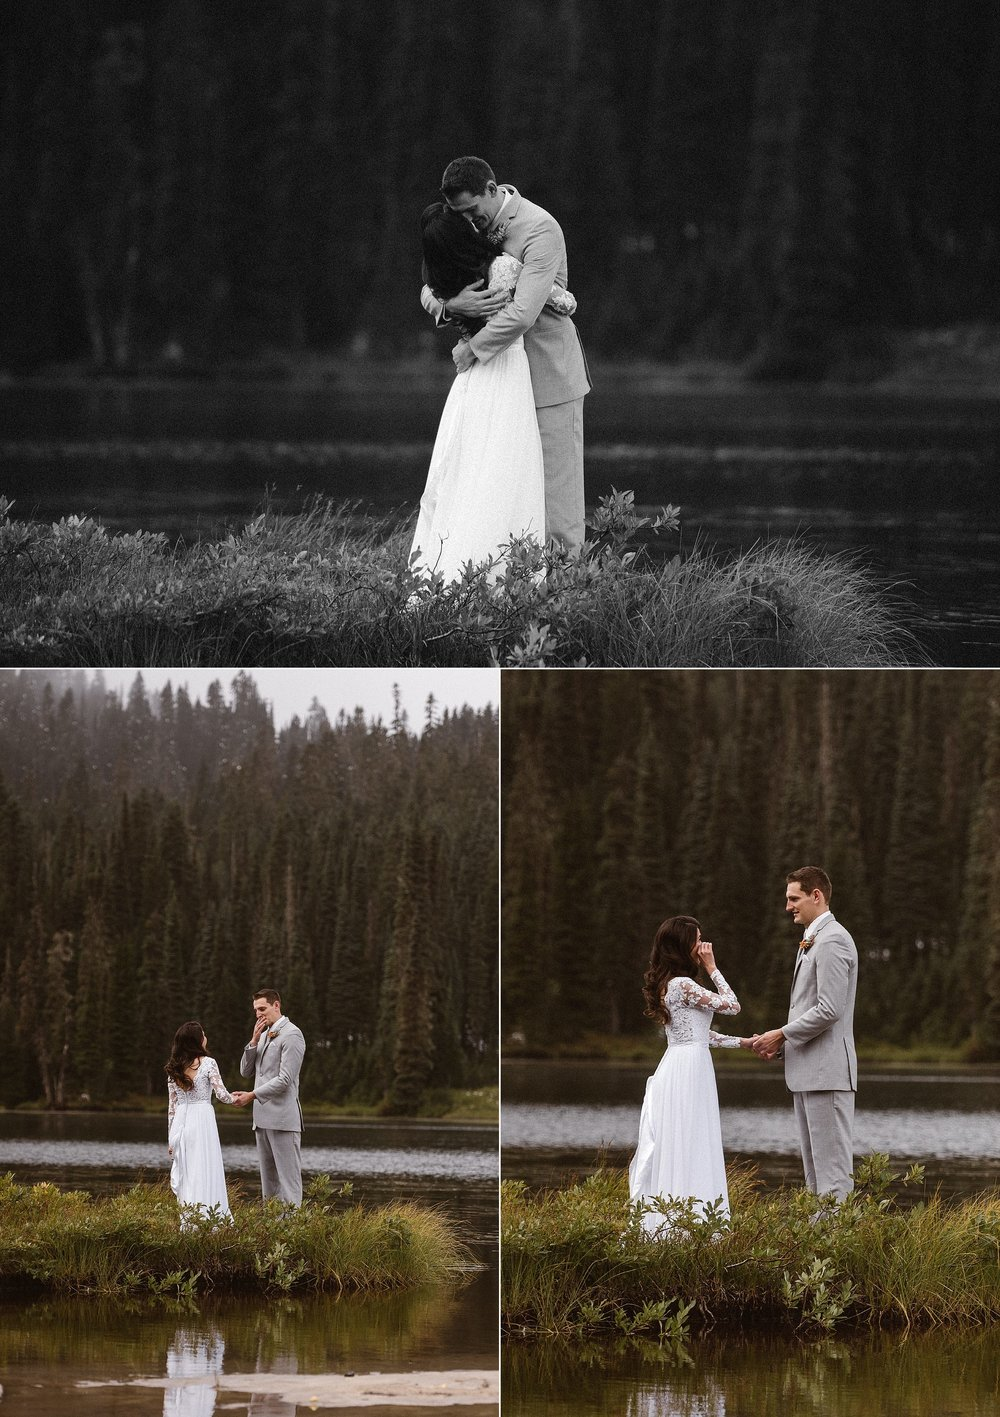 Resa and Grant both became emotional with excitement and joy. They threw tradition to the wind and opted for an intimate wedding ceremony in a private location in Mount Rainier National Park with on two witnesses and their intimate traveling elopement photographer Maddie Mae.